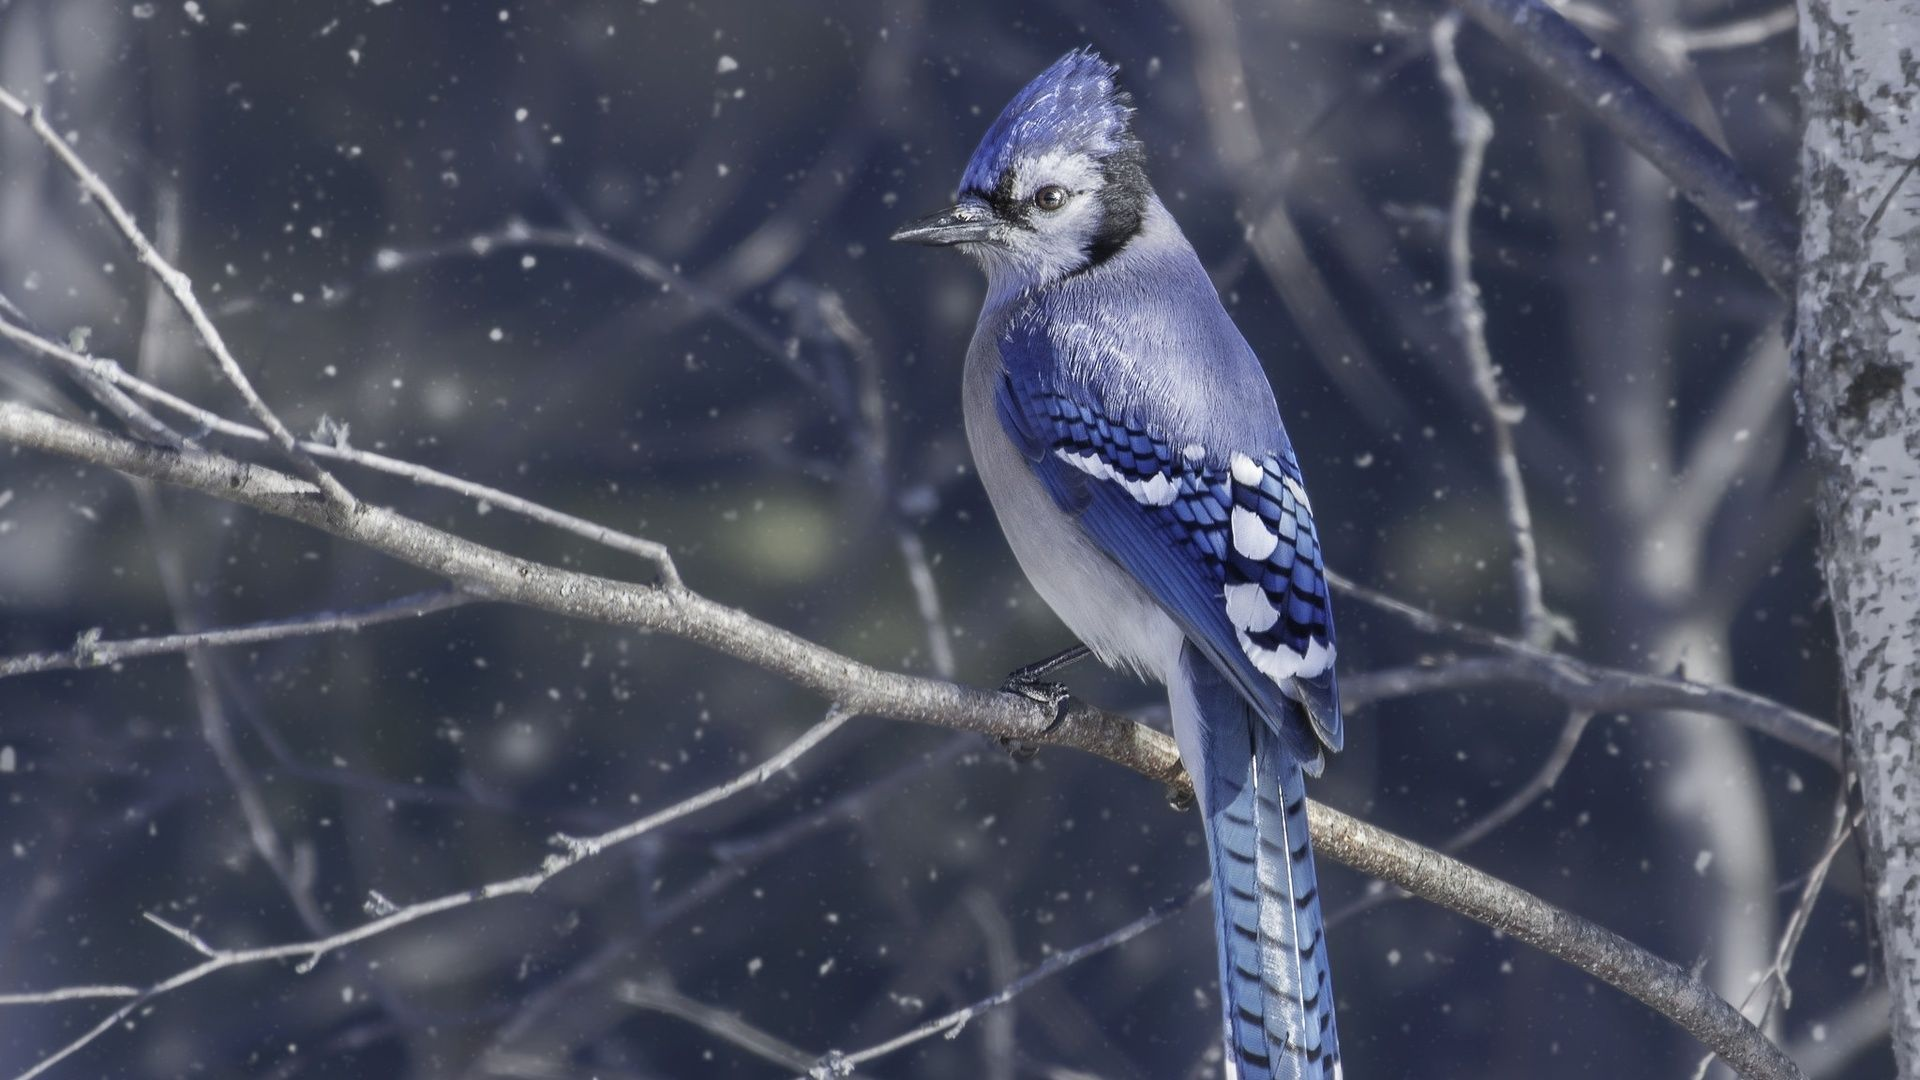 Blue Jays Wallpaper and Background